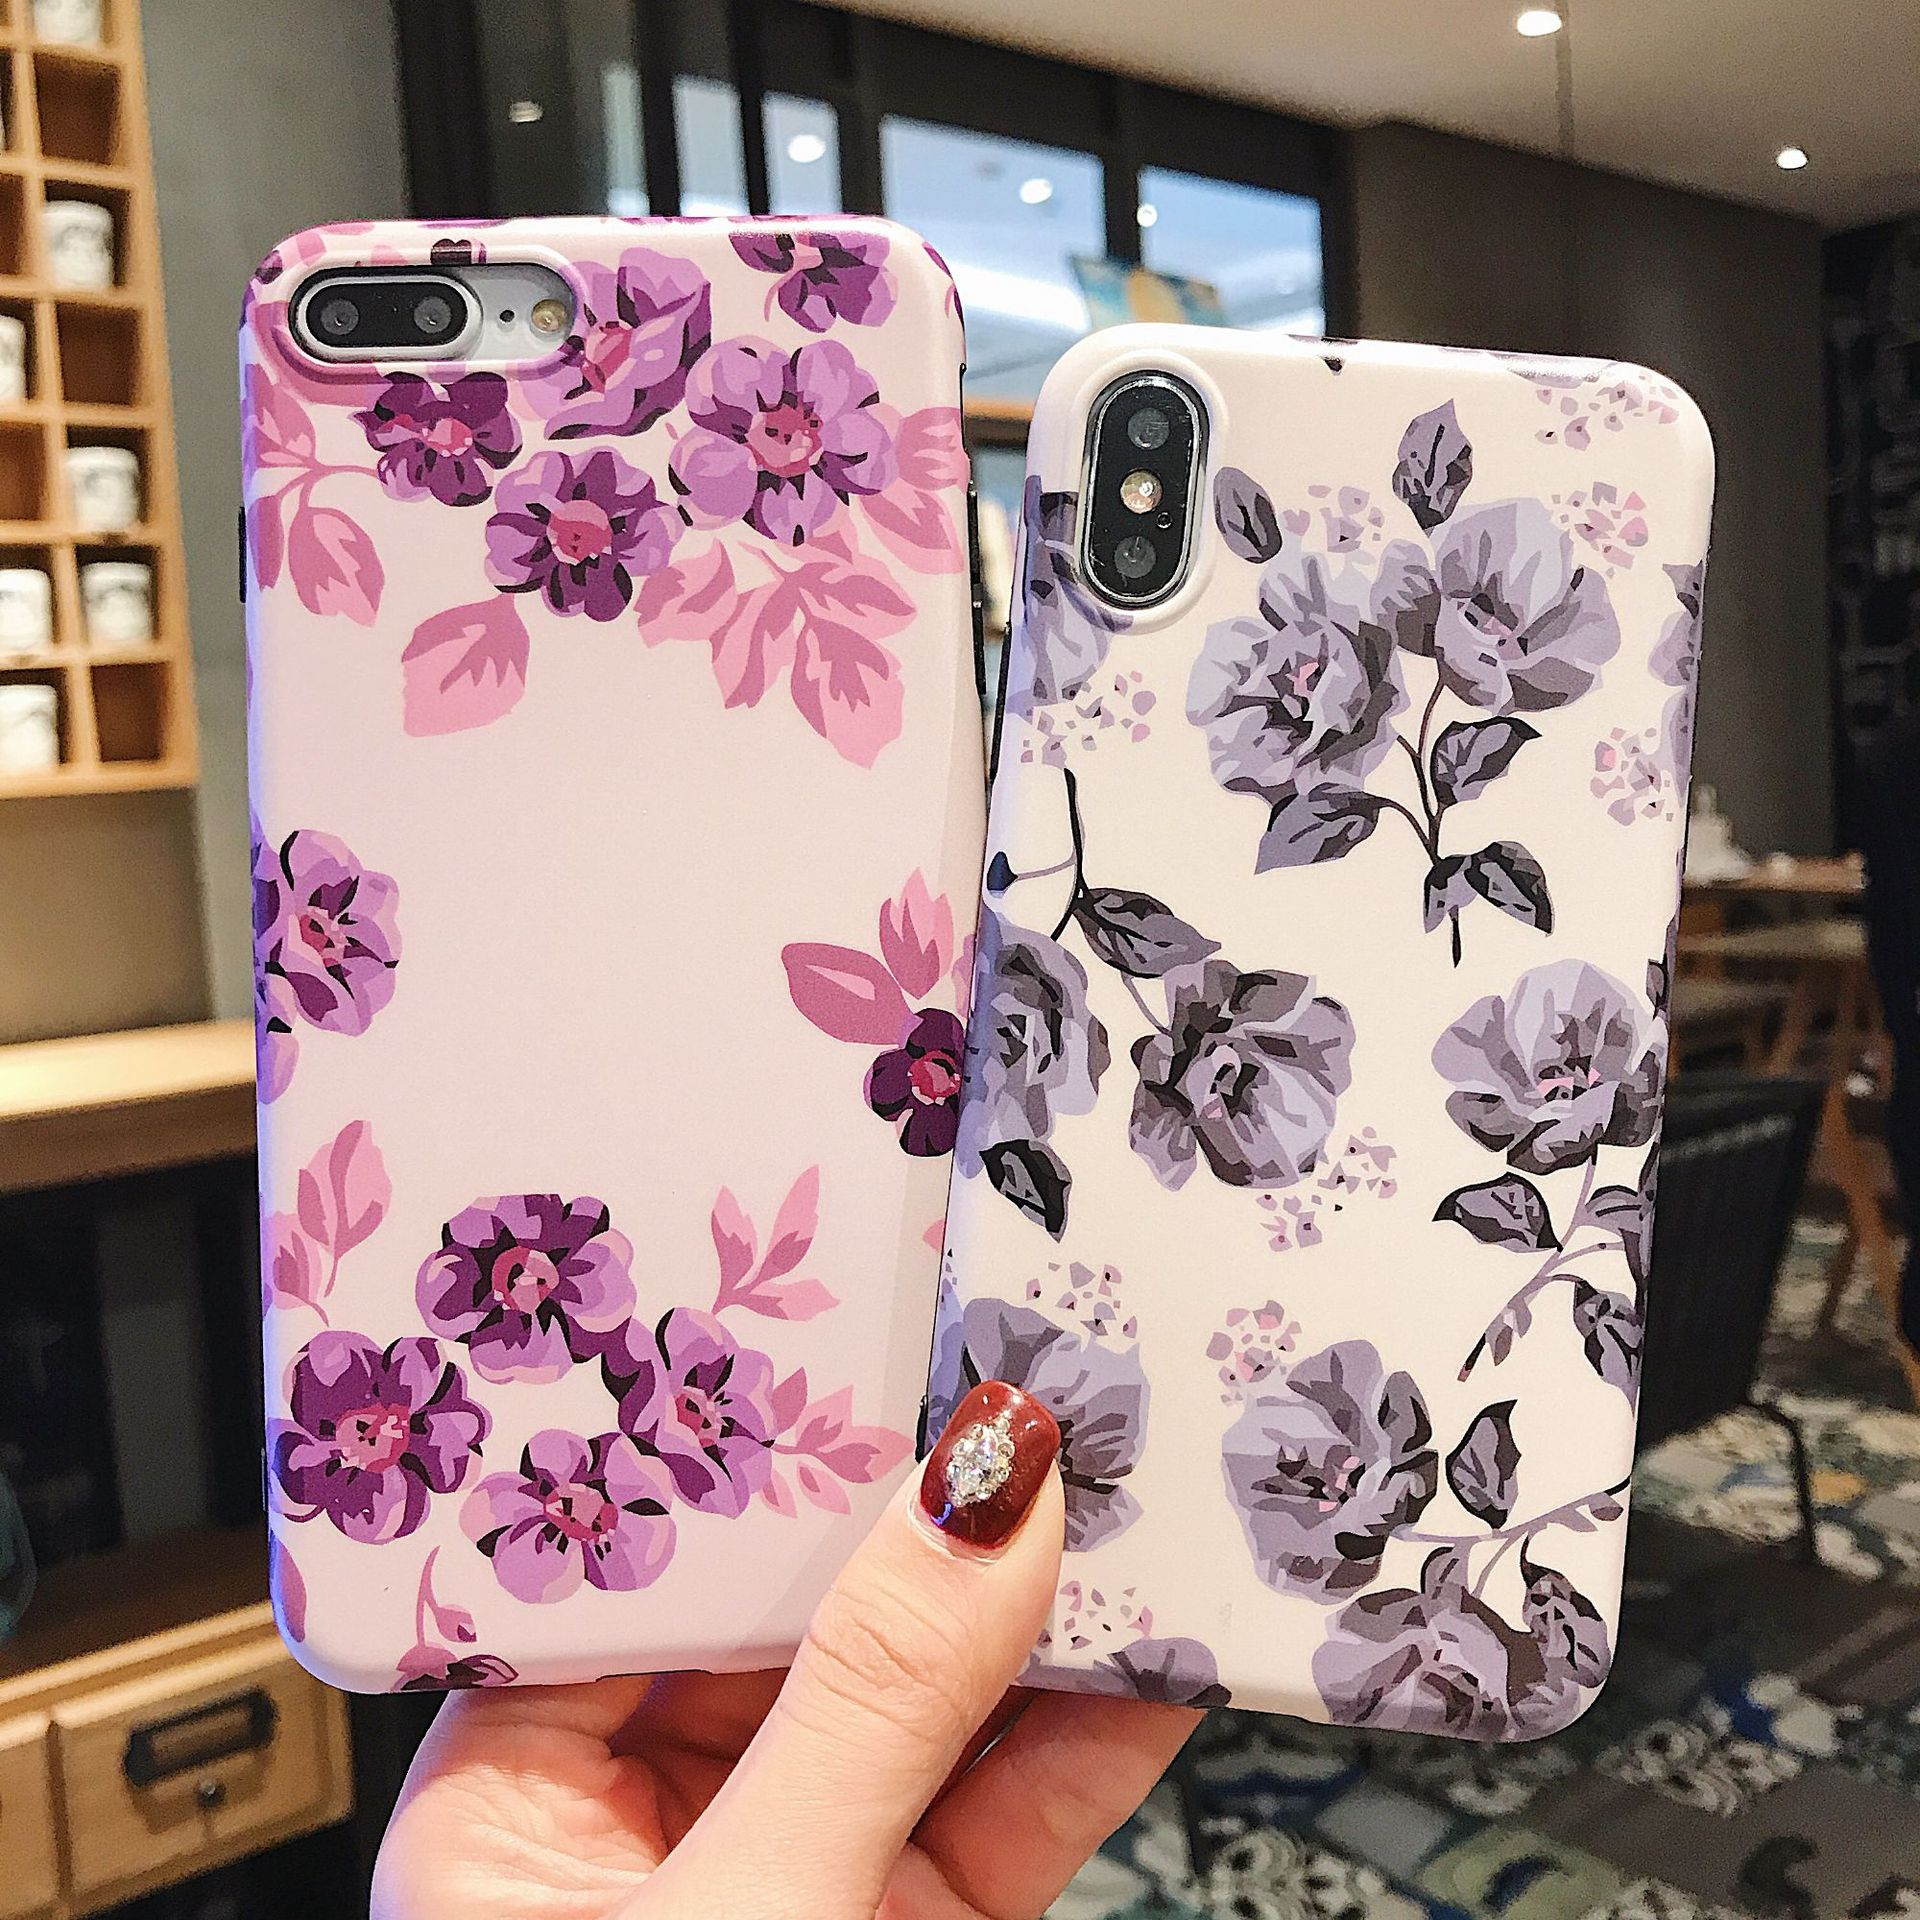 Classic Retro Flower Series Lmd Craft Anti-falling Edge TPU Soft Shell Mobile Phone Protective Cover For Iphone 4